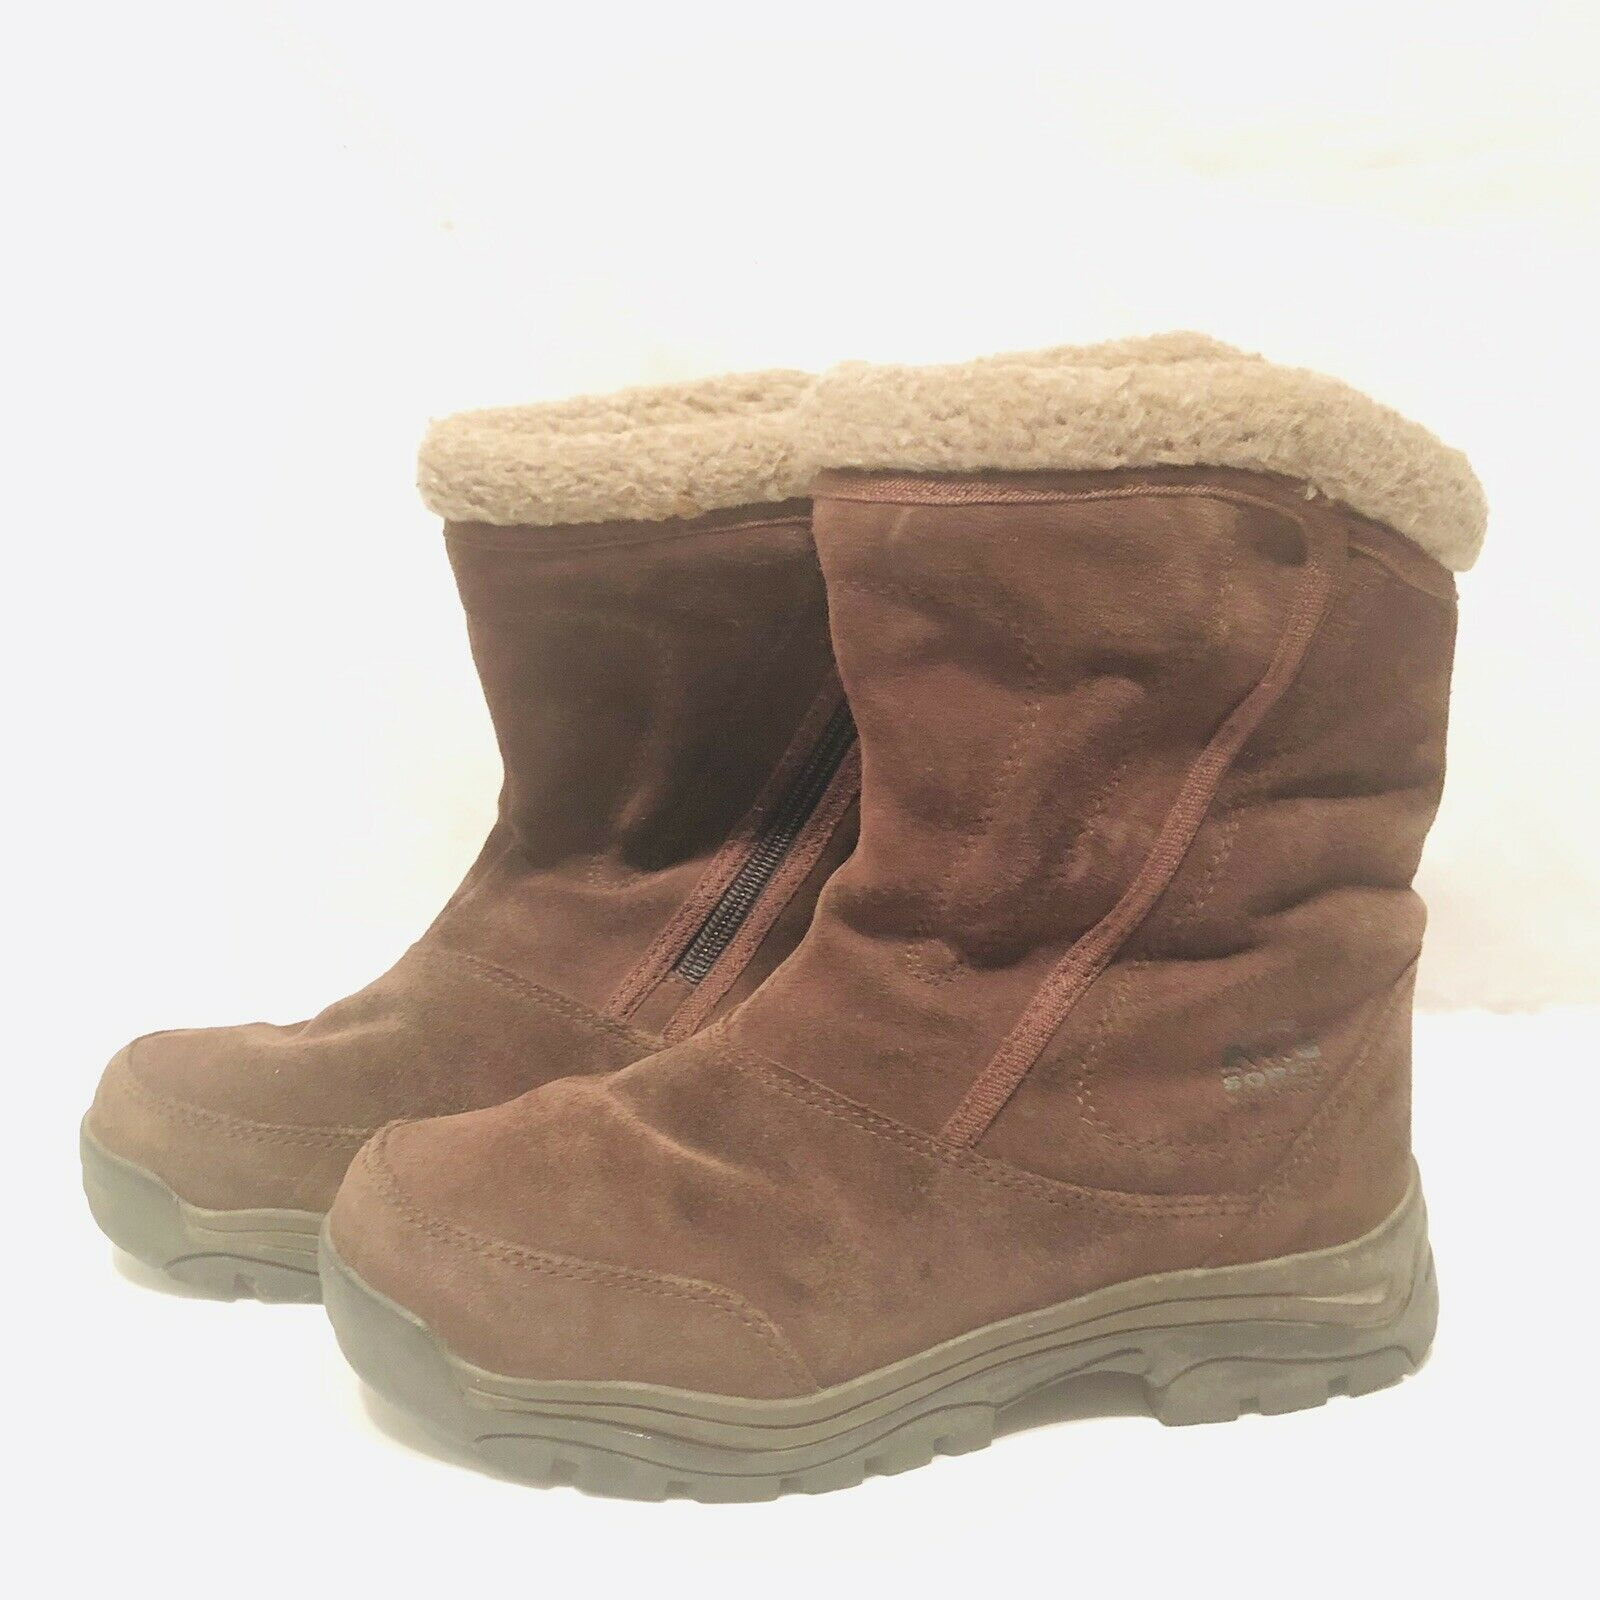 8b665544f87 Sorel Waterfall Women's 7.5 Thinsulate Snow and 50 similar items